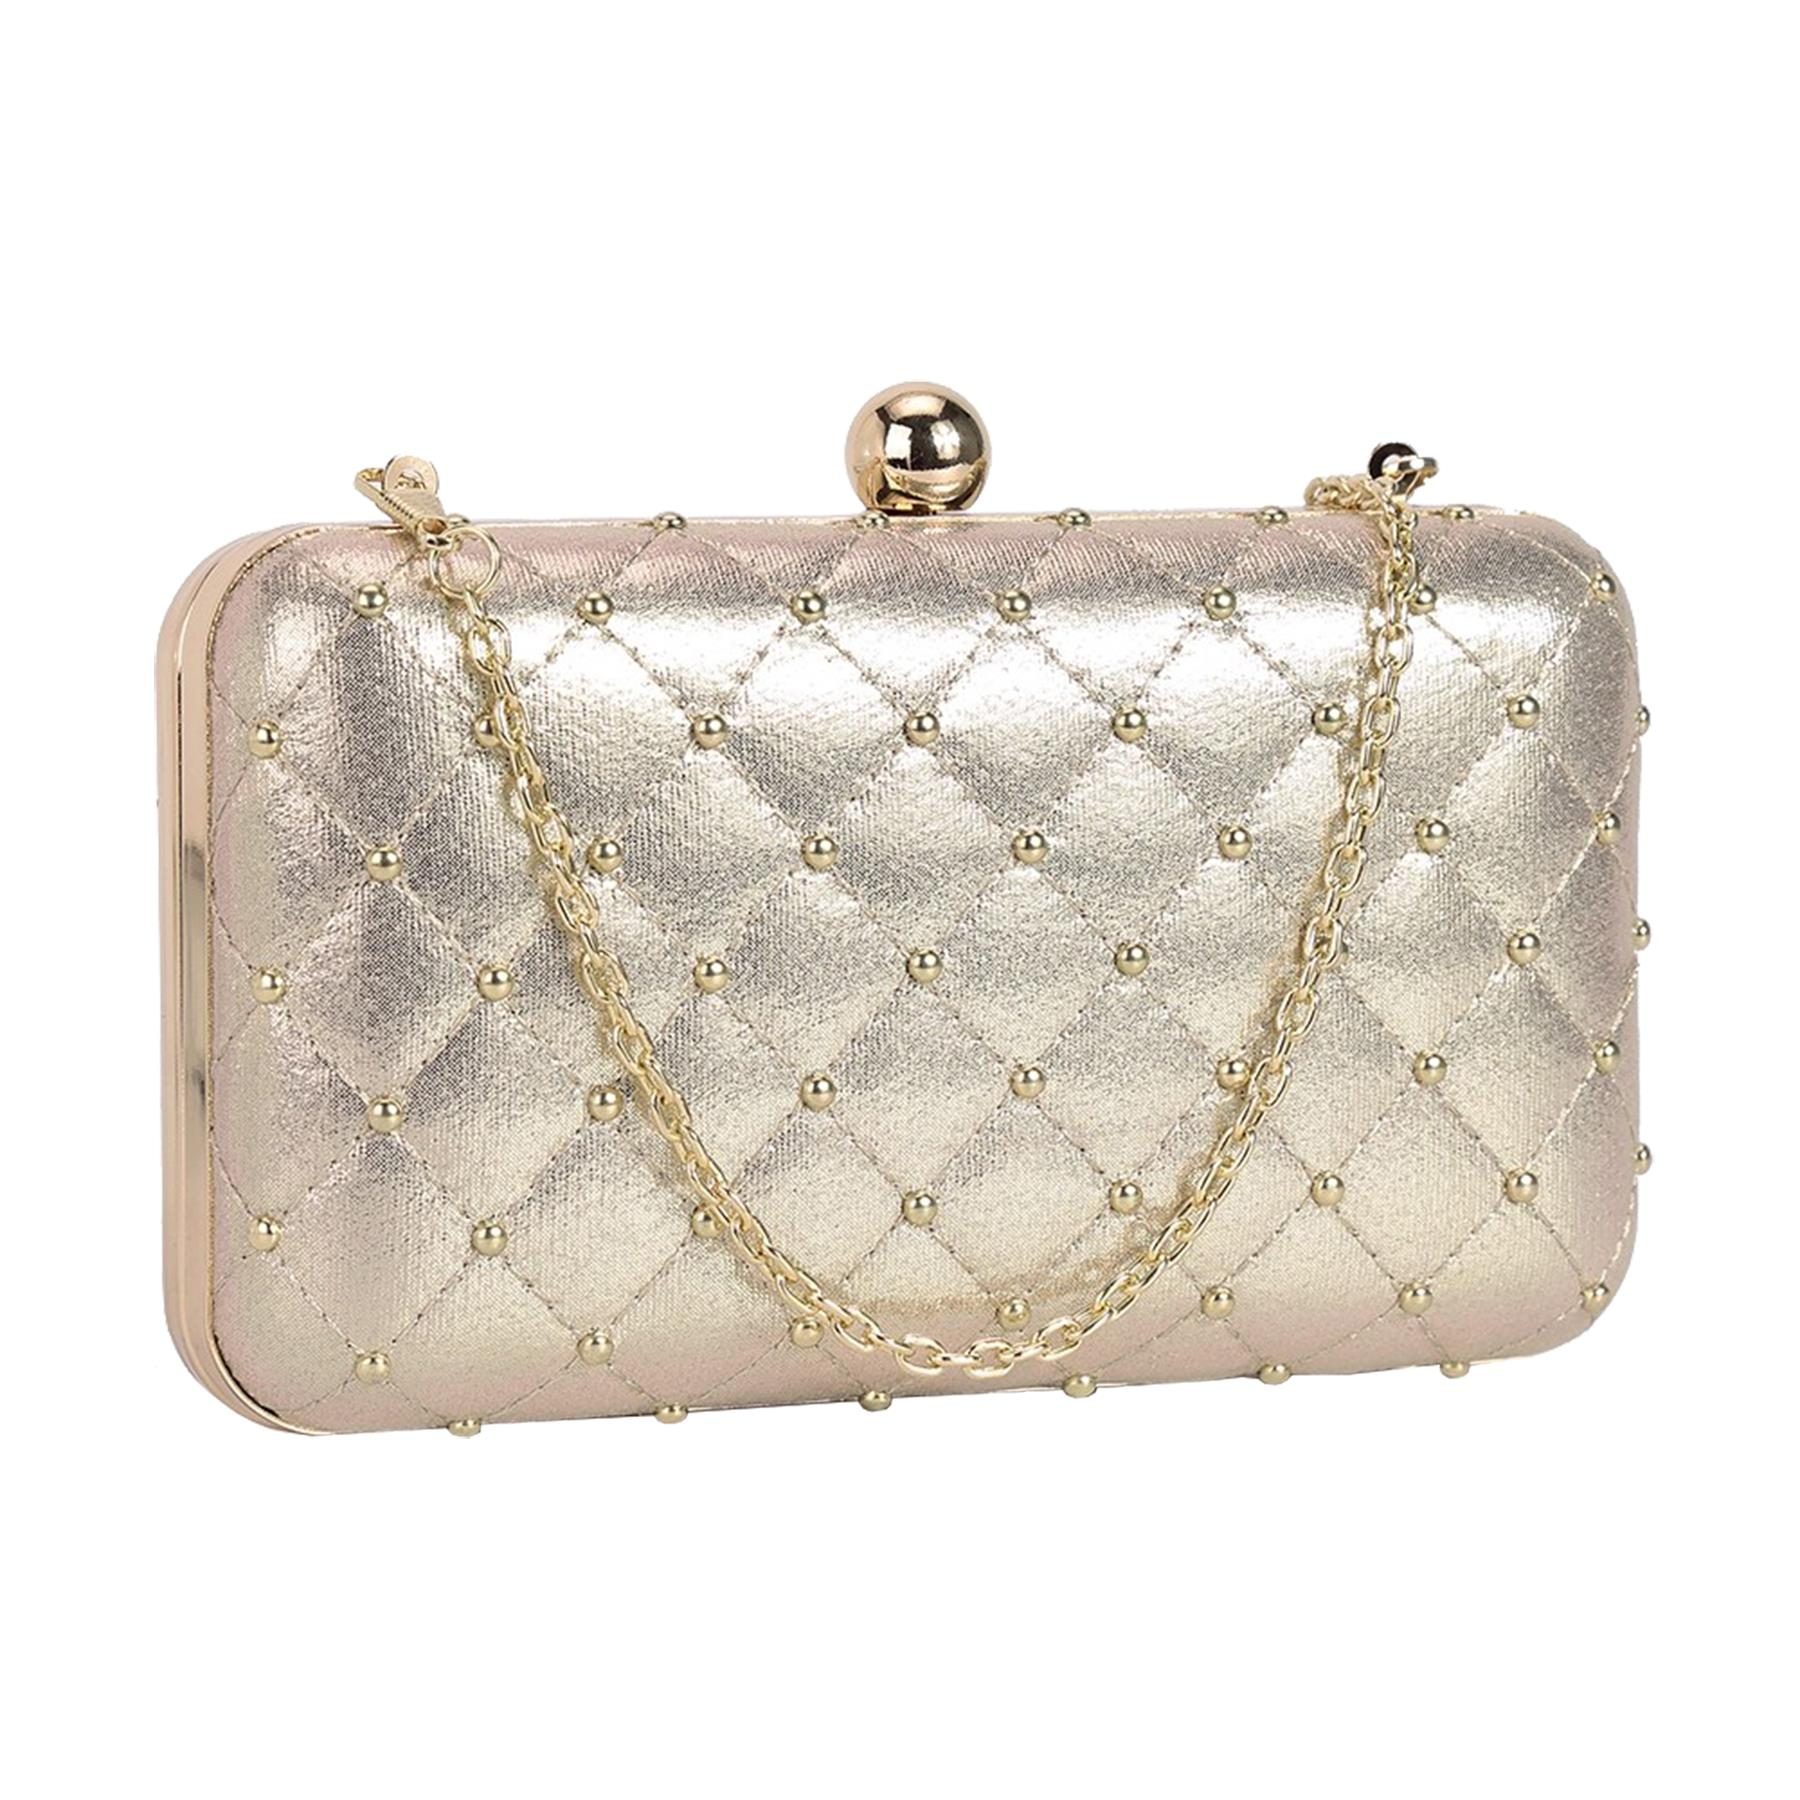 New-Women-s-Quilted-Studded-Faux-Leather-Party-Bridal-Prom-Box-Clutch-Bag thumbnail 6